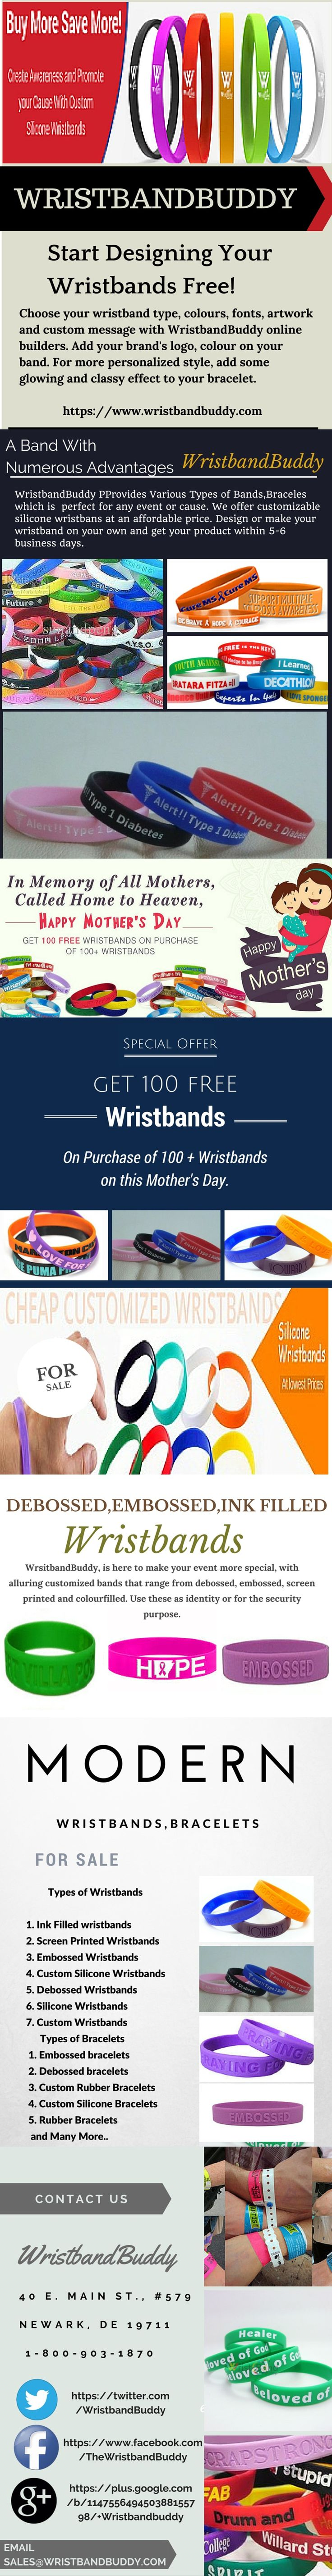 From #WristbandBuddy you will get the best quality #Custom #Silicone #Wristbands at cheap prices. Choose text, #Font and color to match your #Brand. You will be provided with prompt delivery.